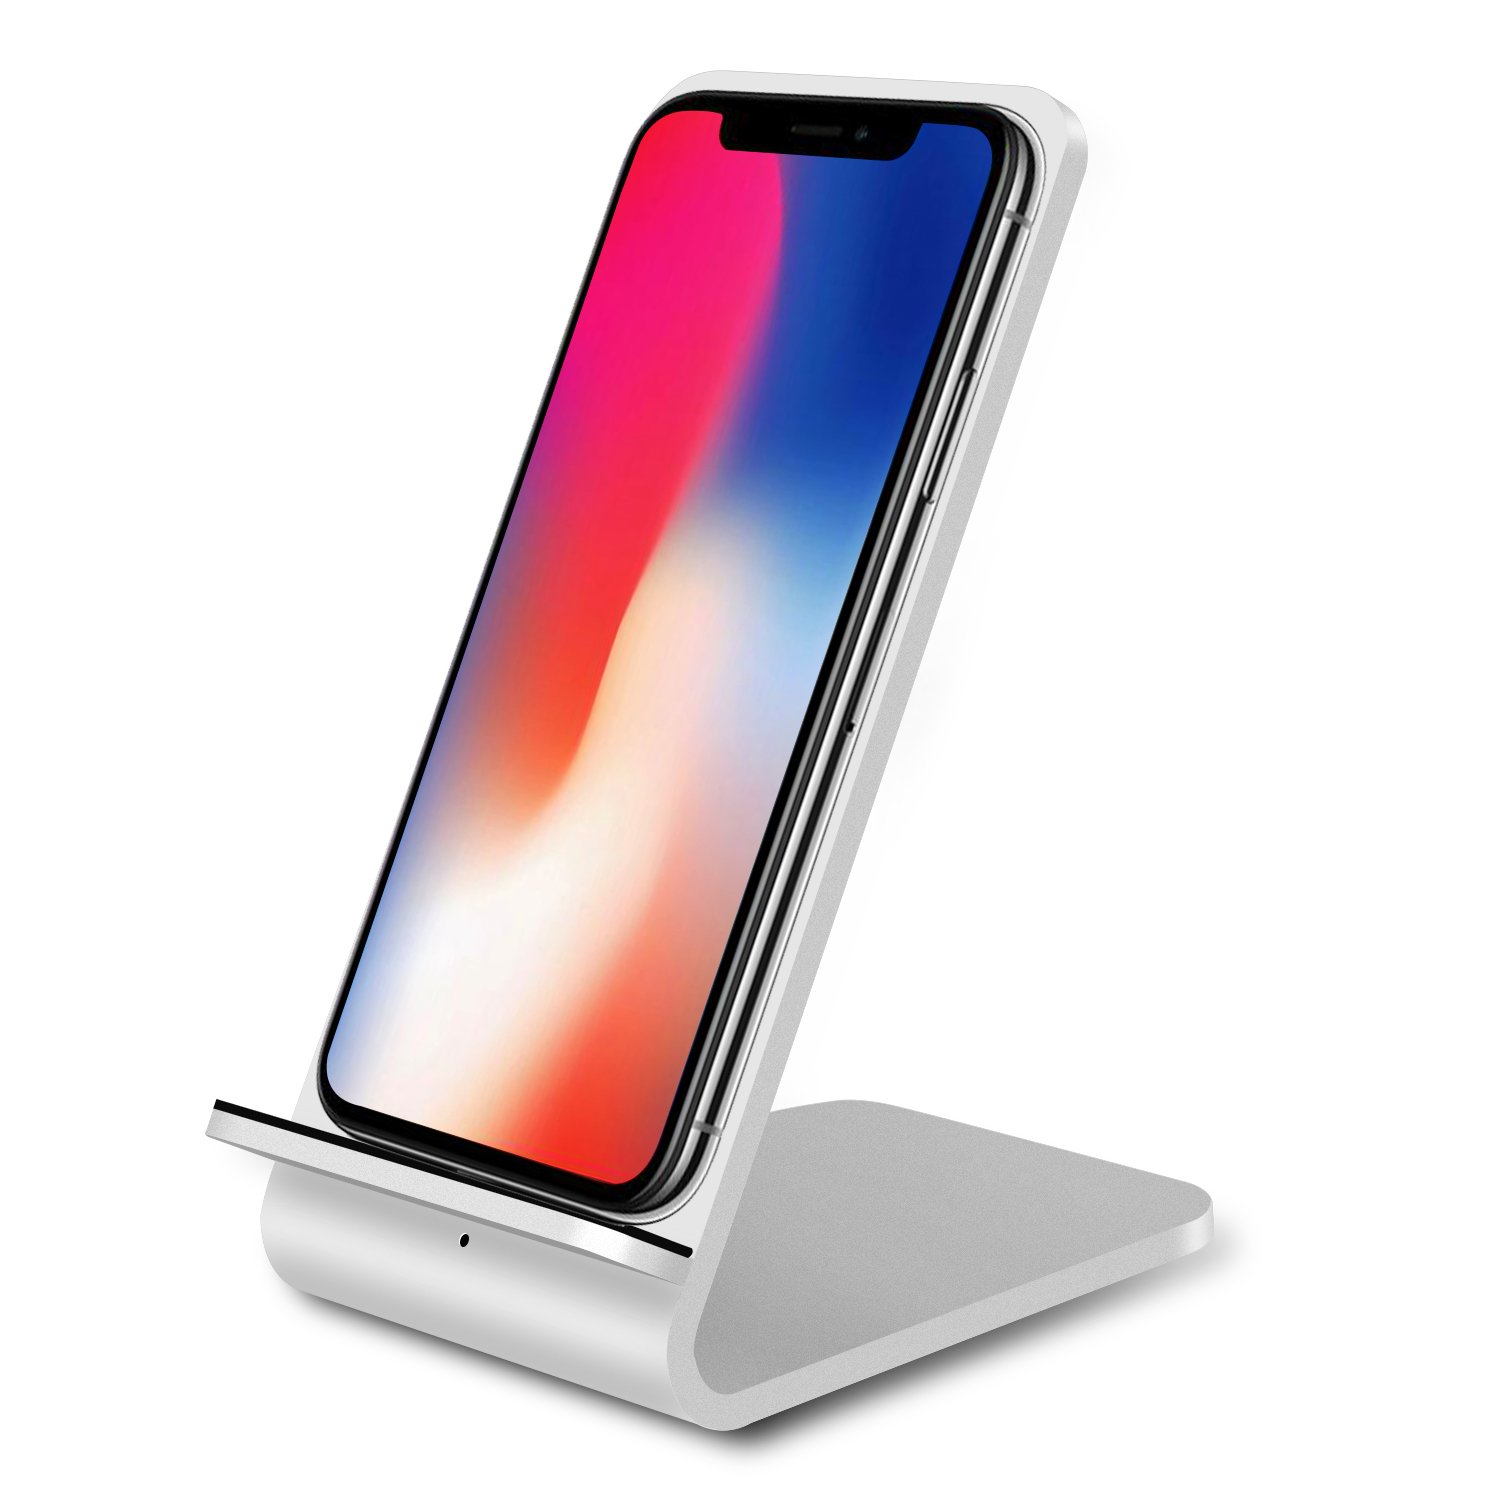 Qi Wireless Charger,Guanchi Aluminum Fast Wireless Charging Pad Stand (NO AC Adapter) for Galaxy Note 8 S8 S8 Plus S7 Edge S7 S6 Edge Plus Note 5, ...